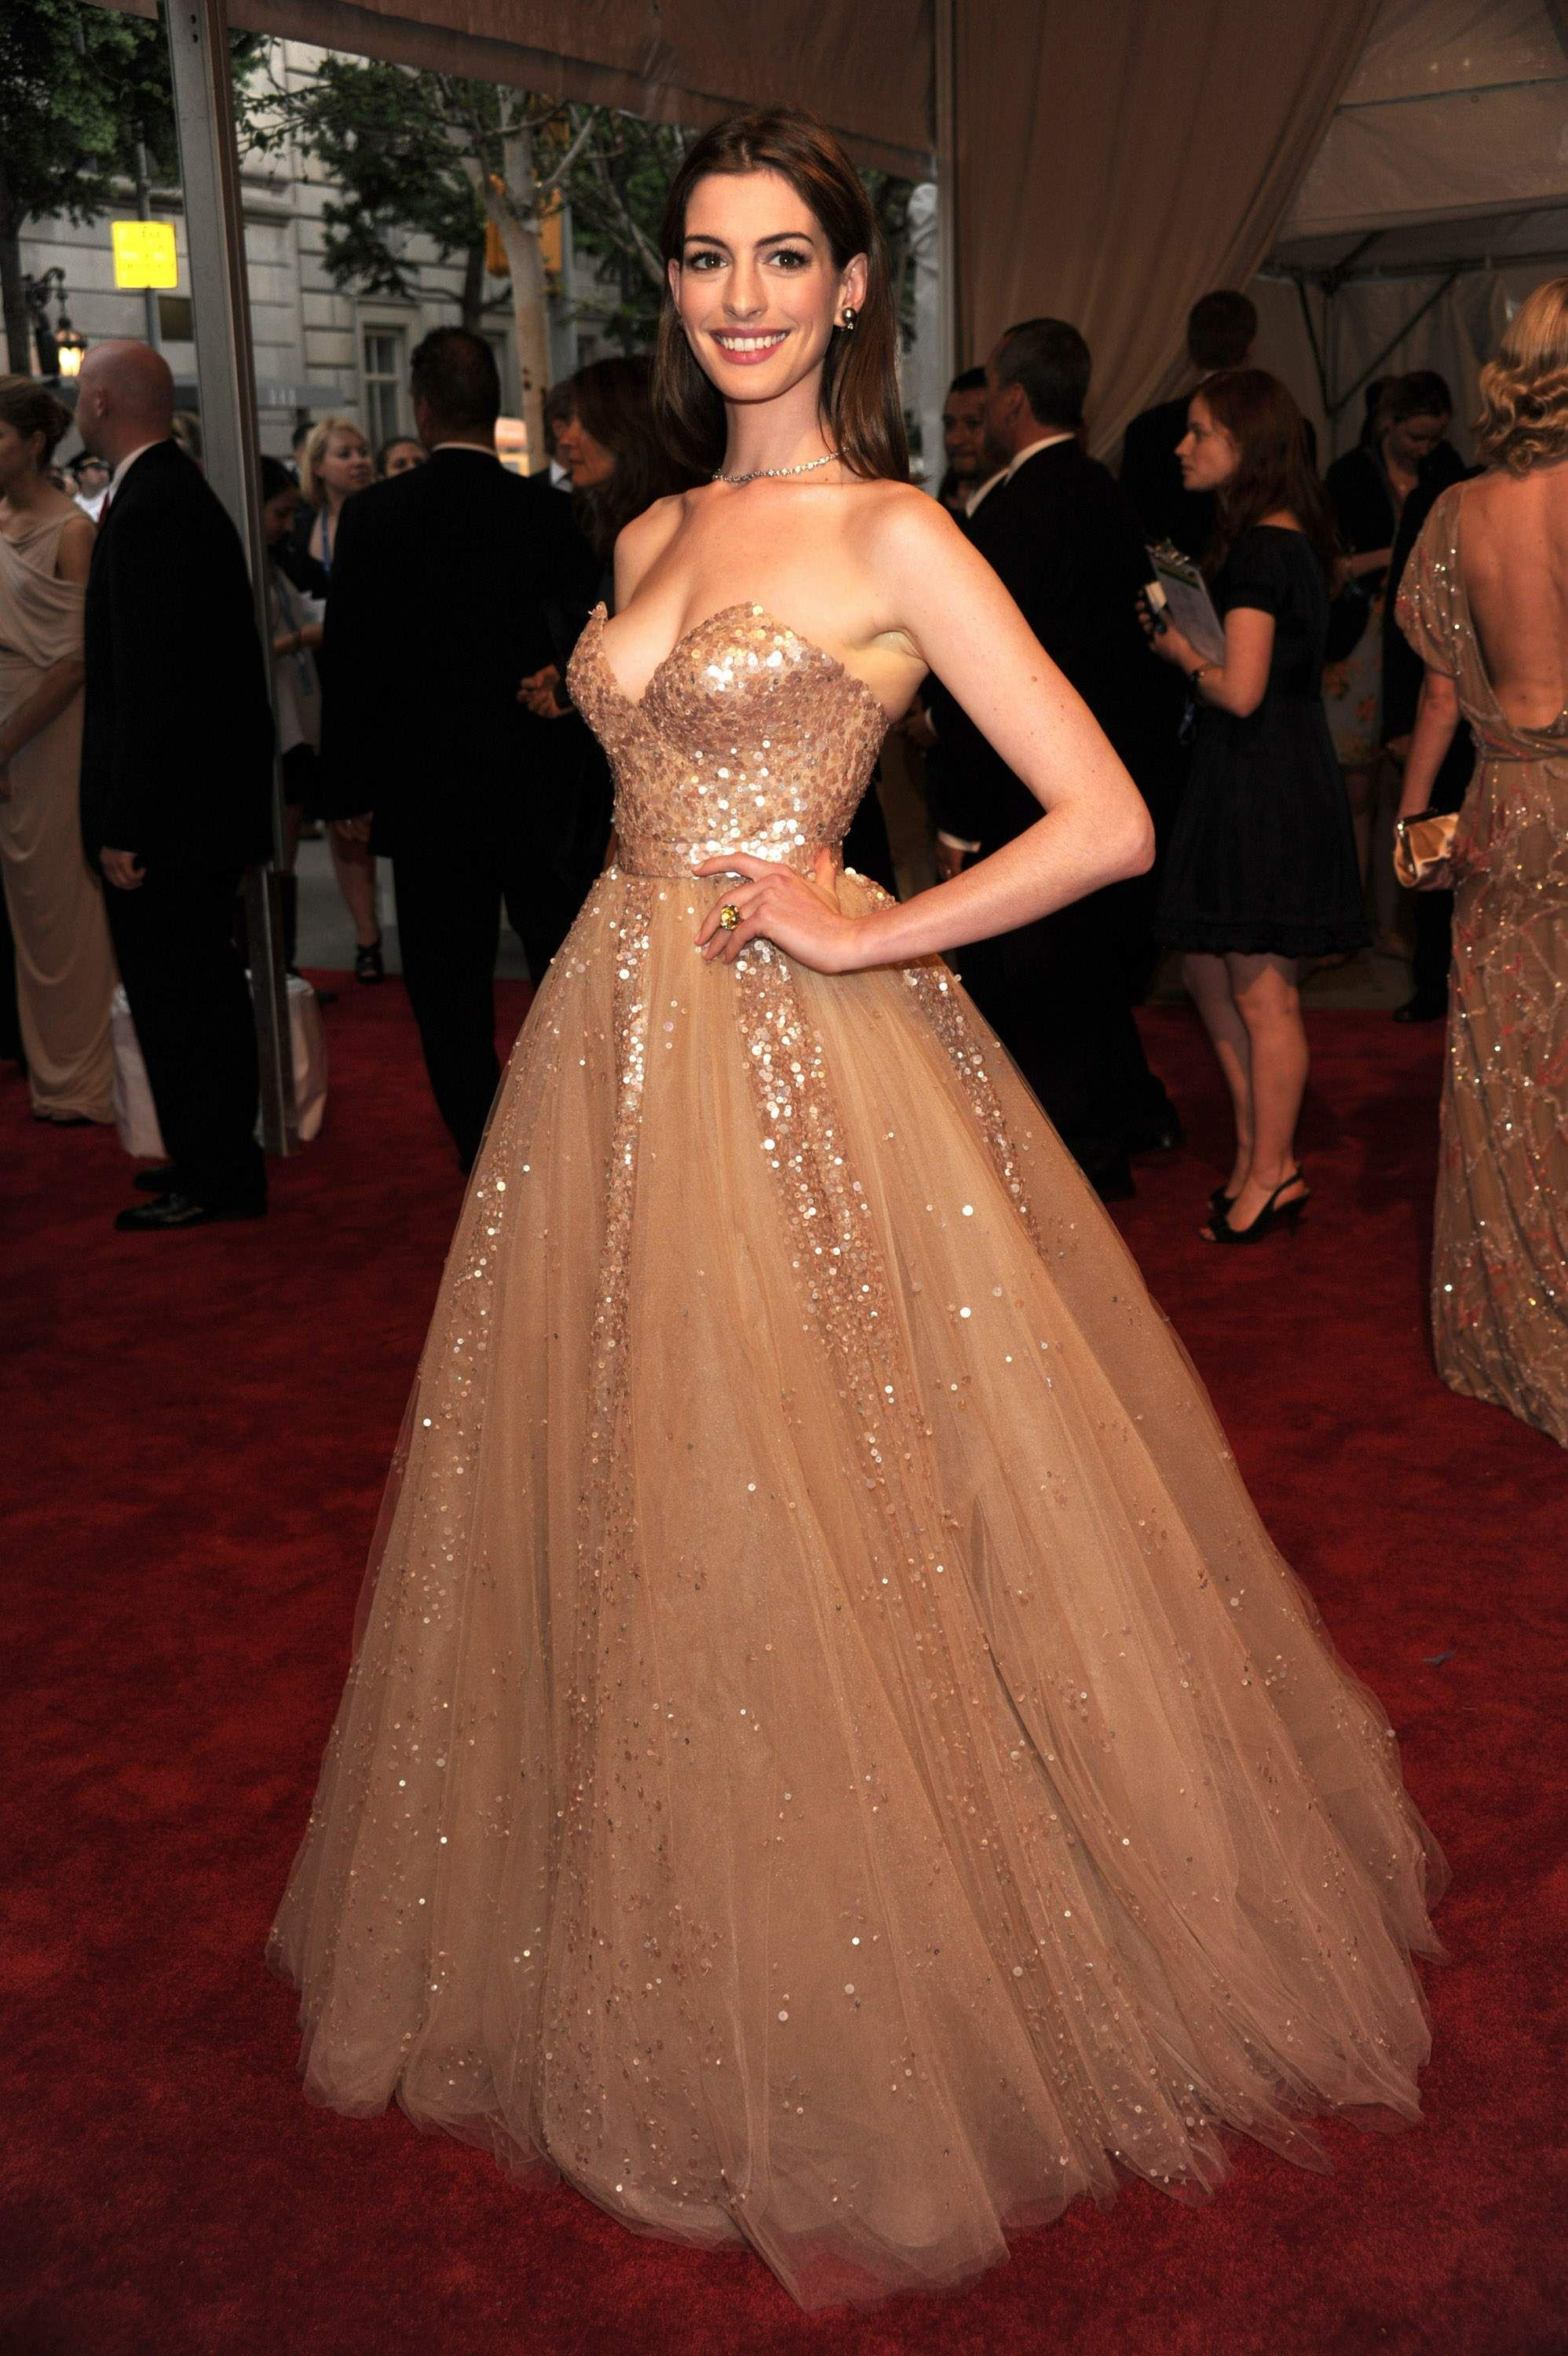 Anne Hathaway | Dream Gowns | Pinterest | Anne hathaway, Gowns and ...